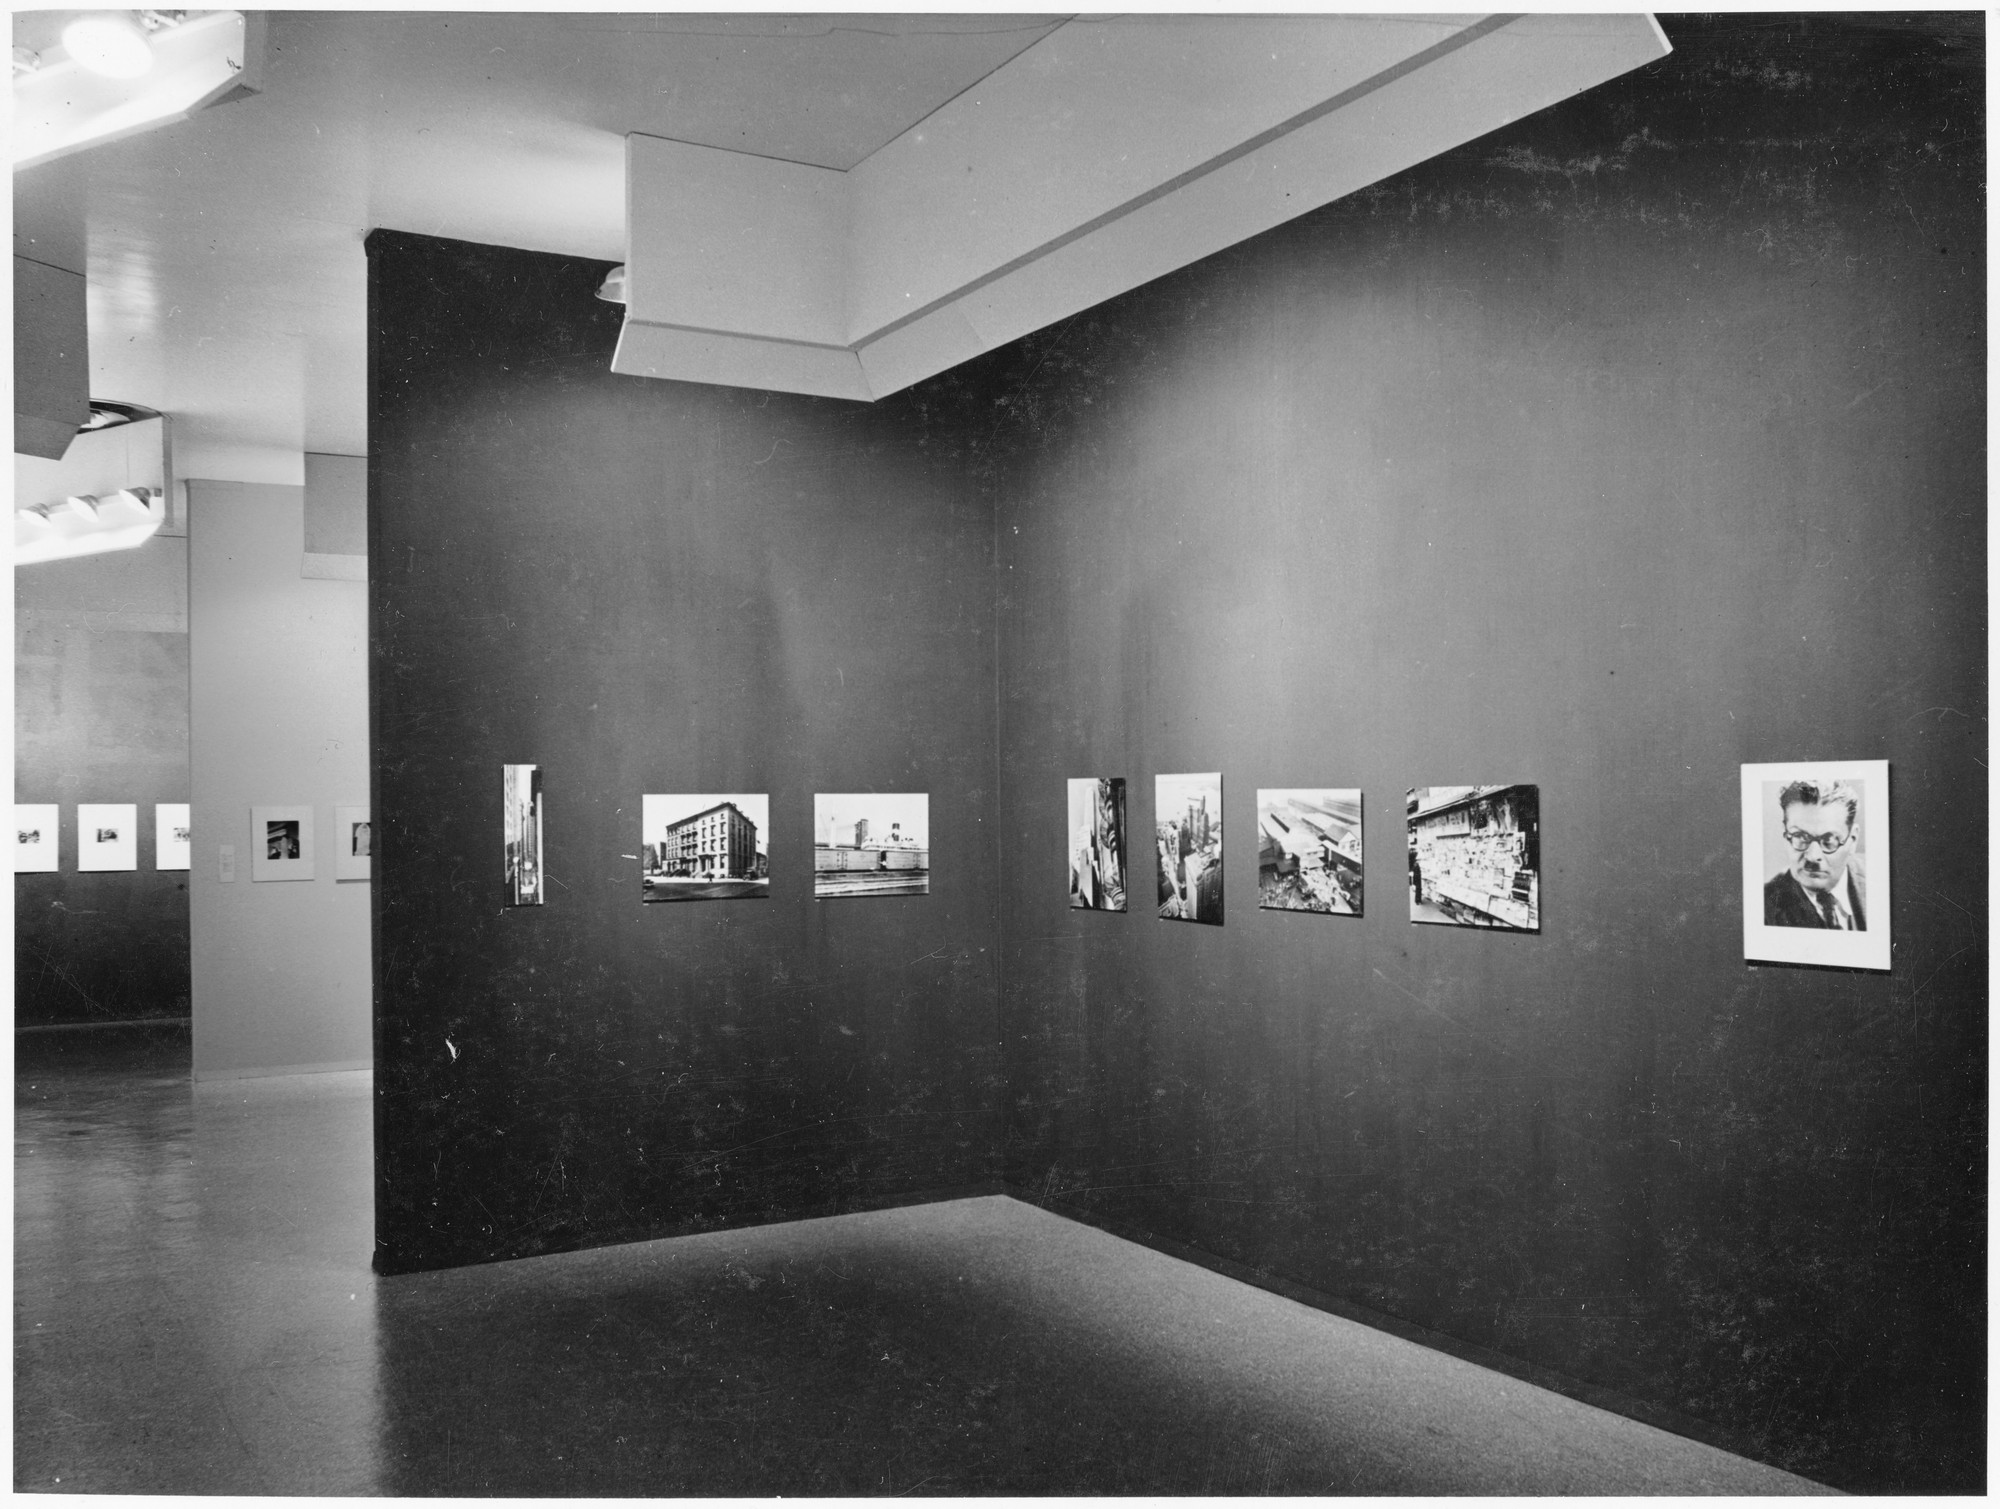 "Installation view of the exhibition, ""Seven American Photographers,"" in the series, ""Art in Our Time:  10th Anniversary Exhibition."" May 10, 1939–September 30, 1939. Photographic Archive. The Museum of Modern Art Archives, New York. IN86.1. Photograph by Eliot Elisofon."